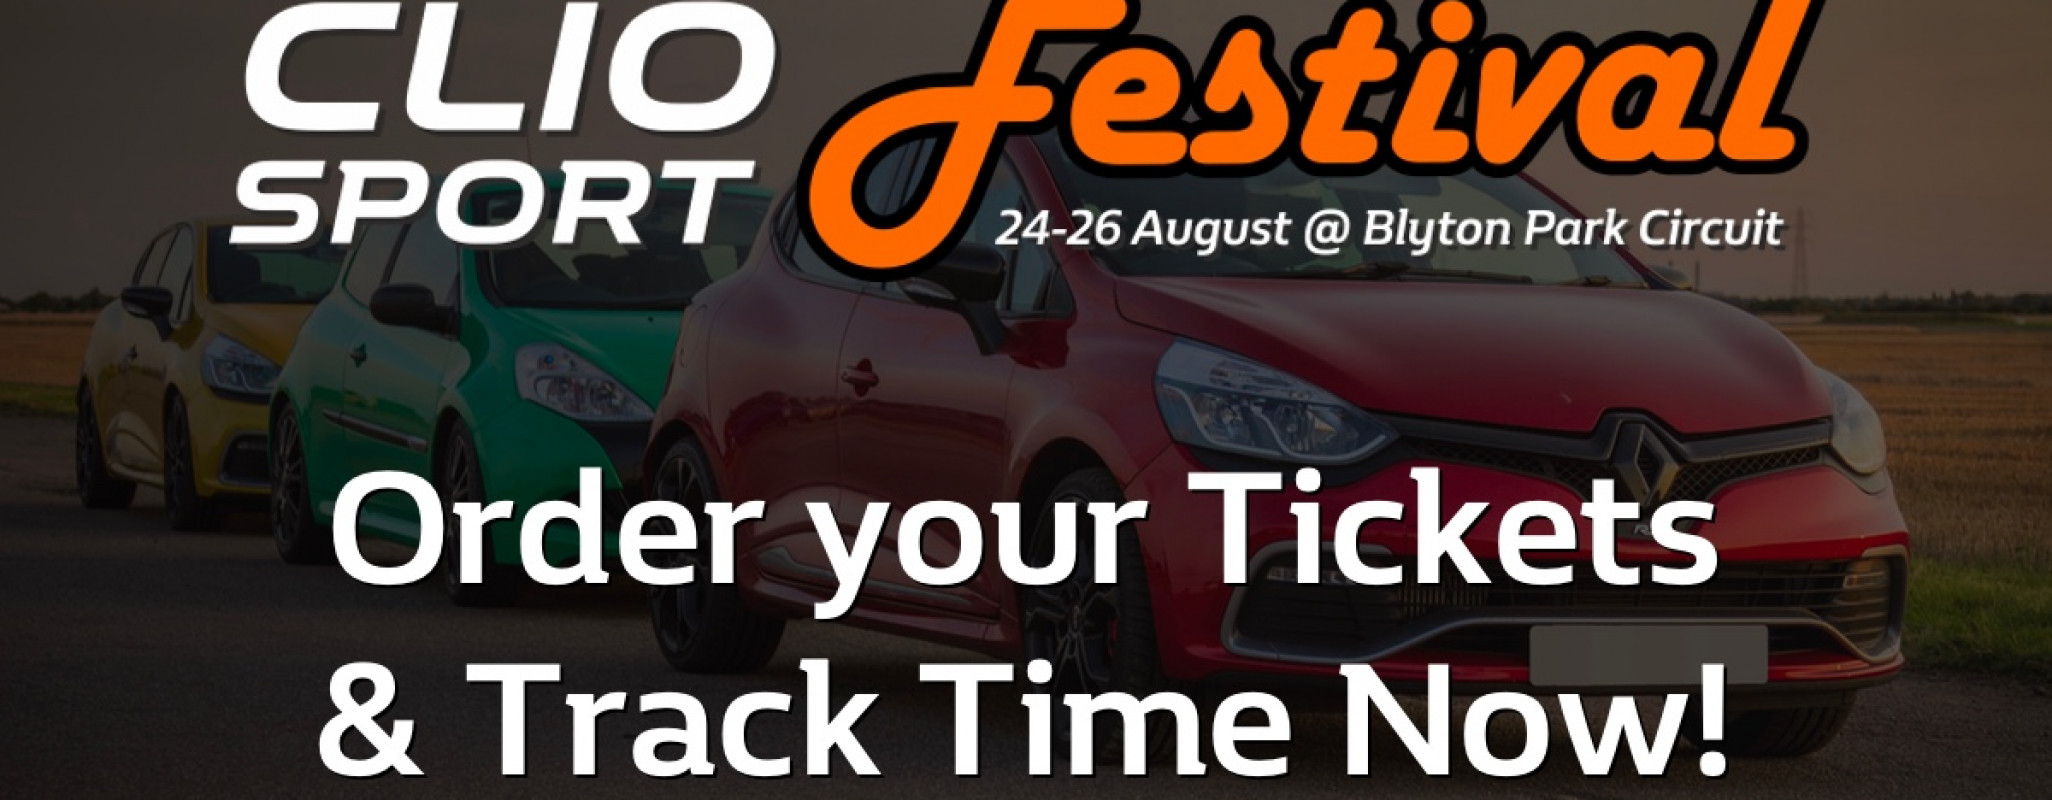 ClioSport Festival 2018 - Book Tickets & Track Time Now!